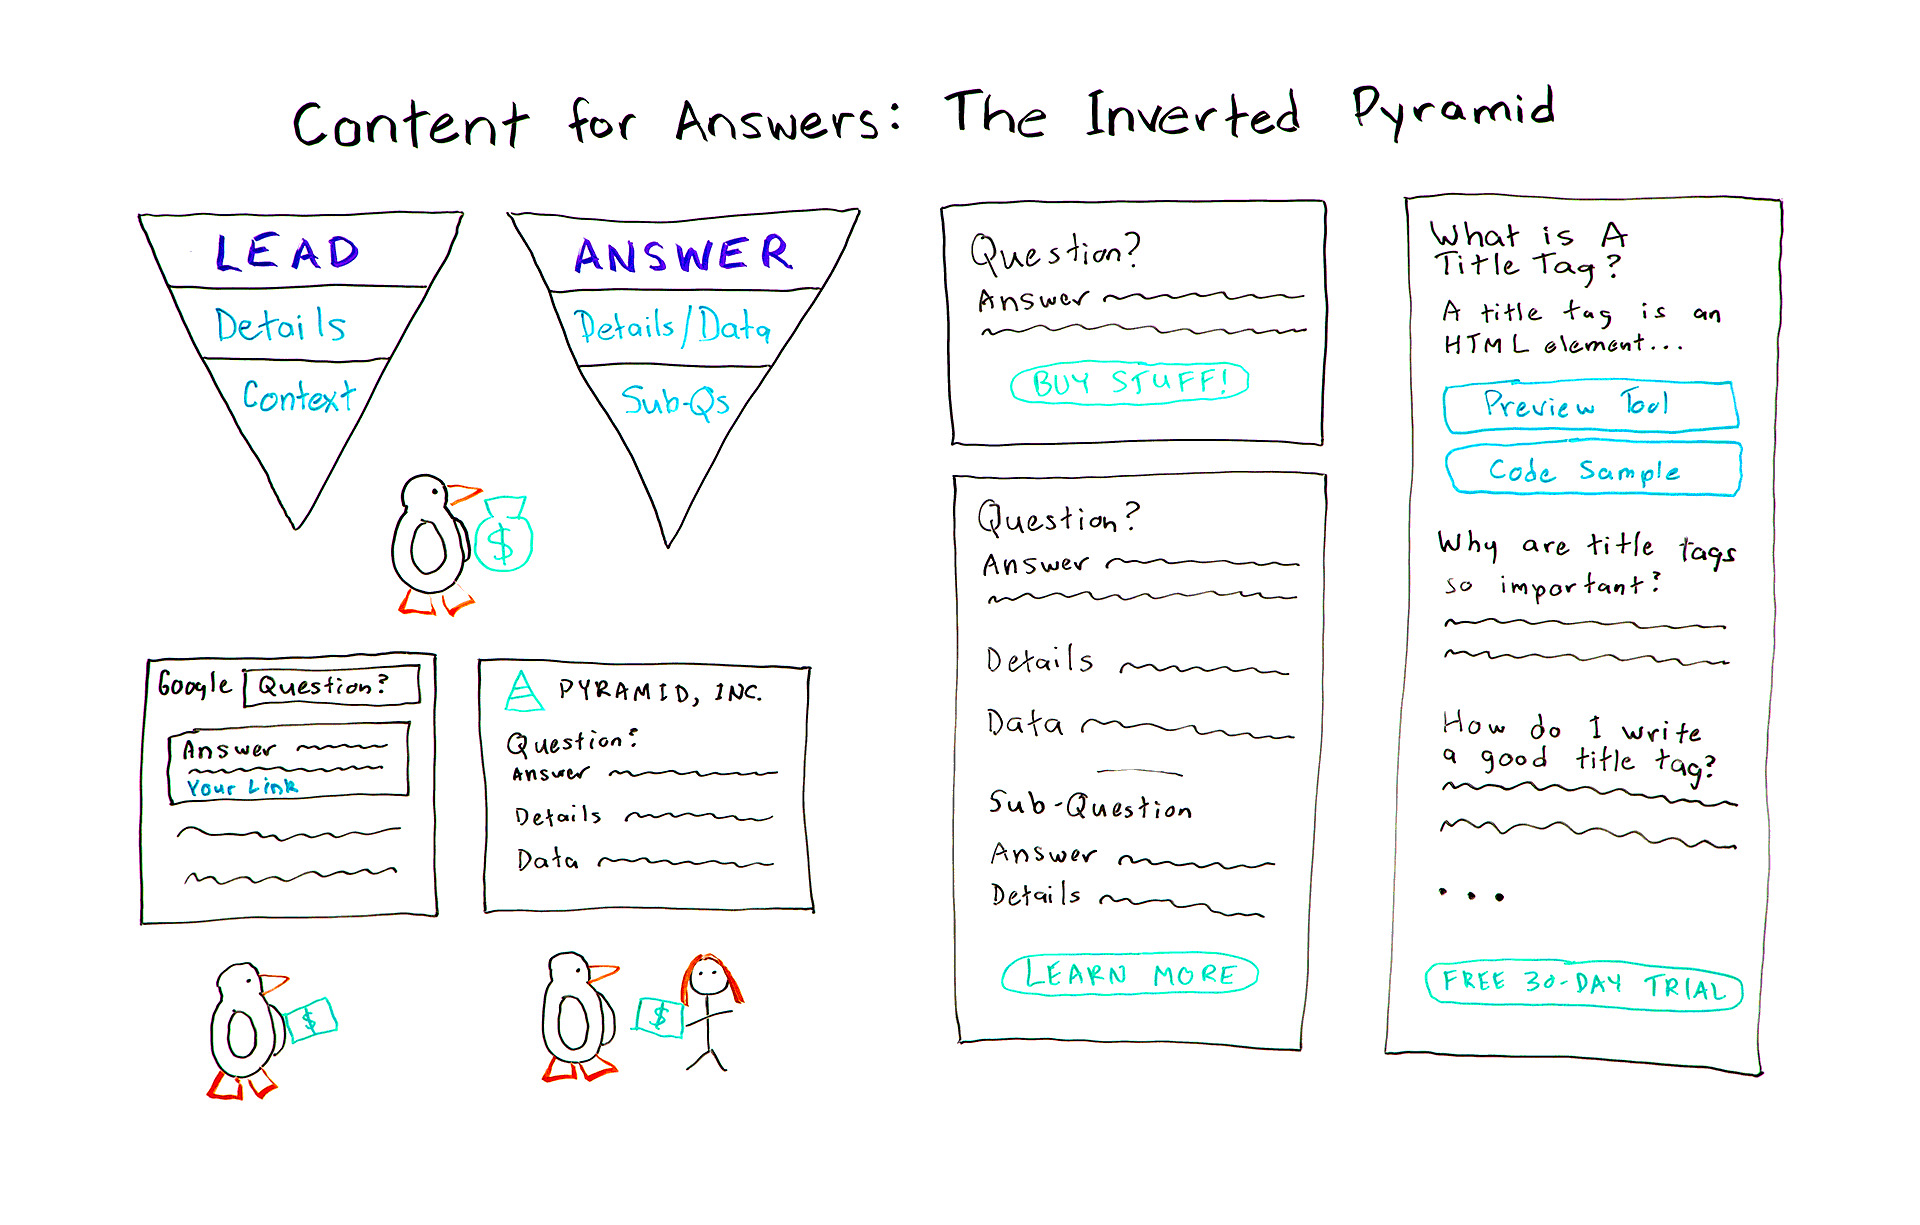 inverted pyramid for content